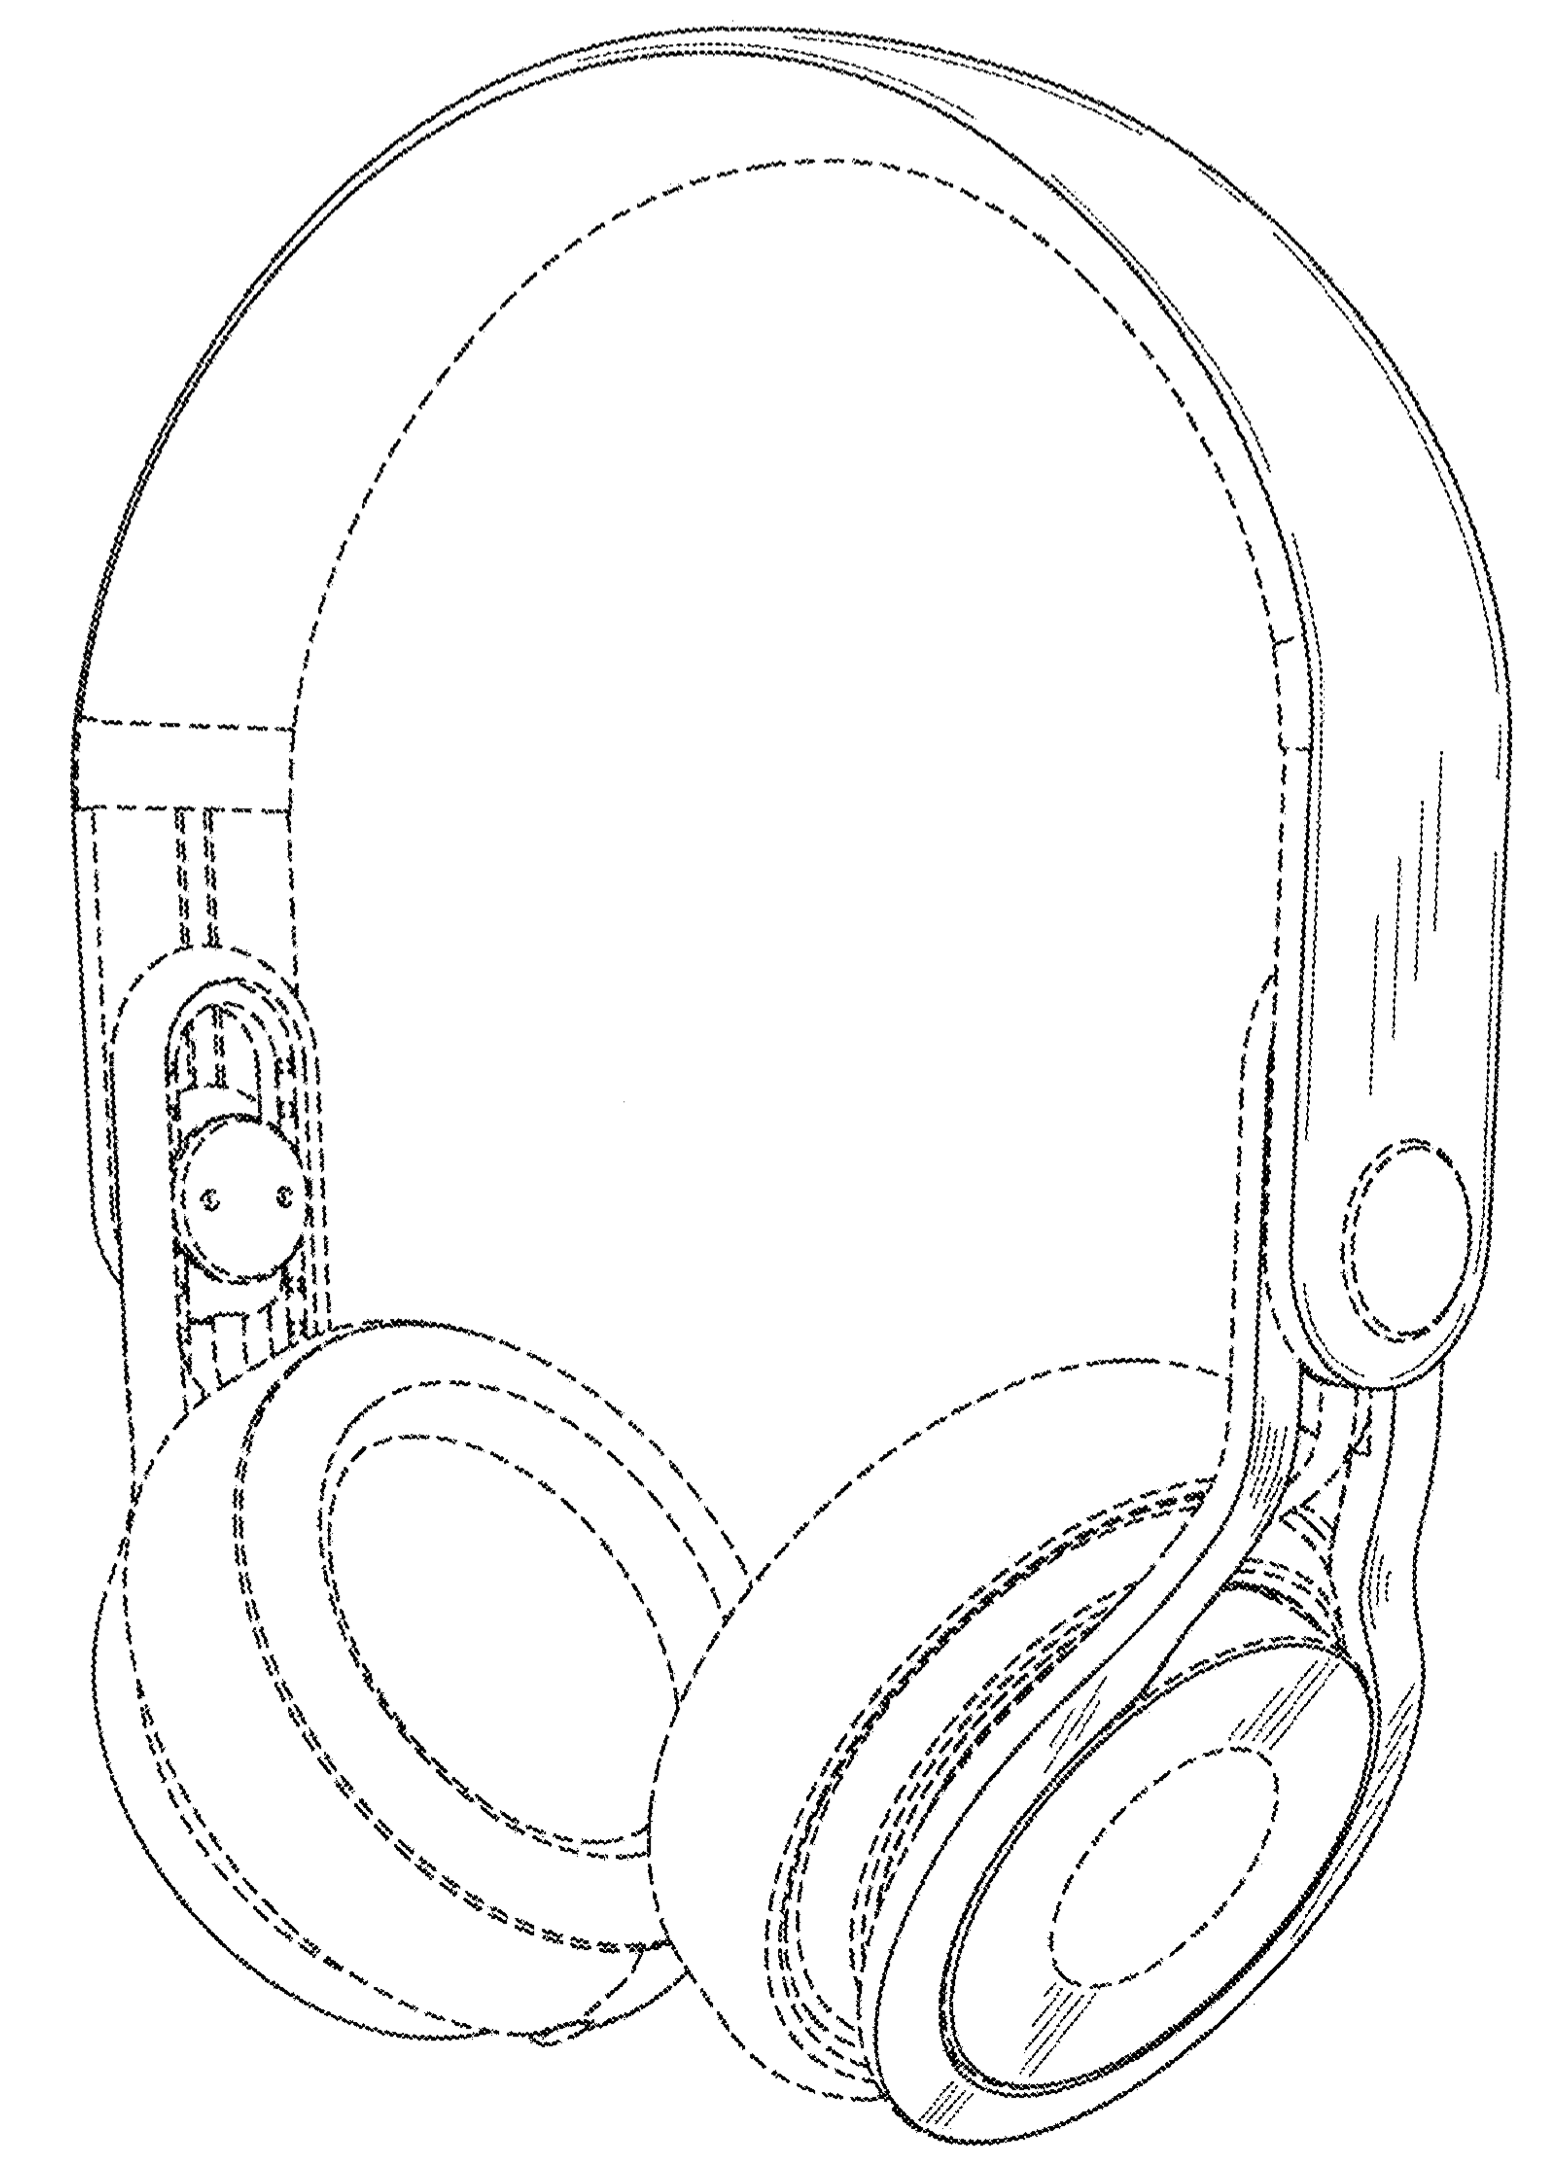 1548x2165 Apple Awarded Patent For Beats Mixr Over Ear Headphone Design